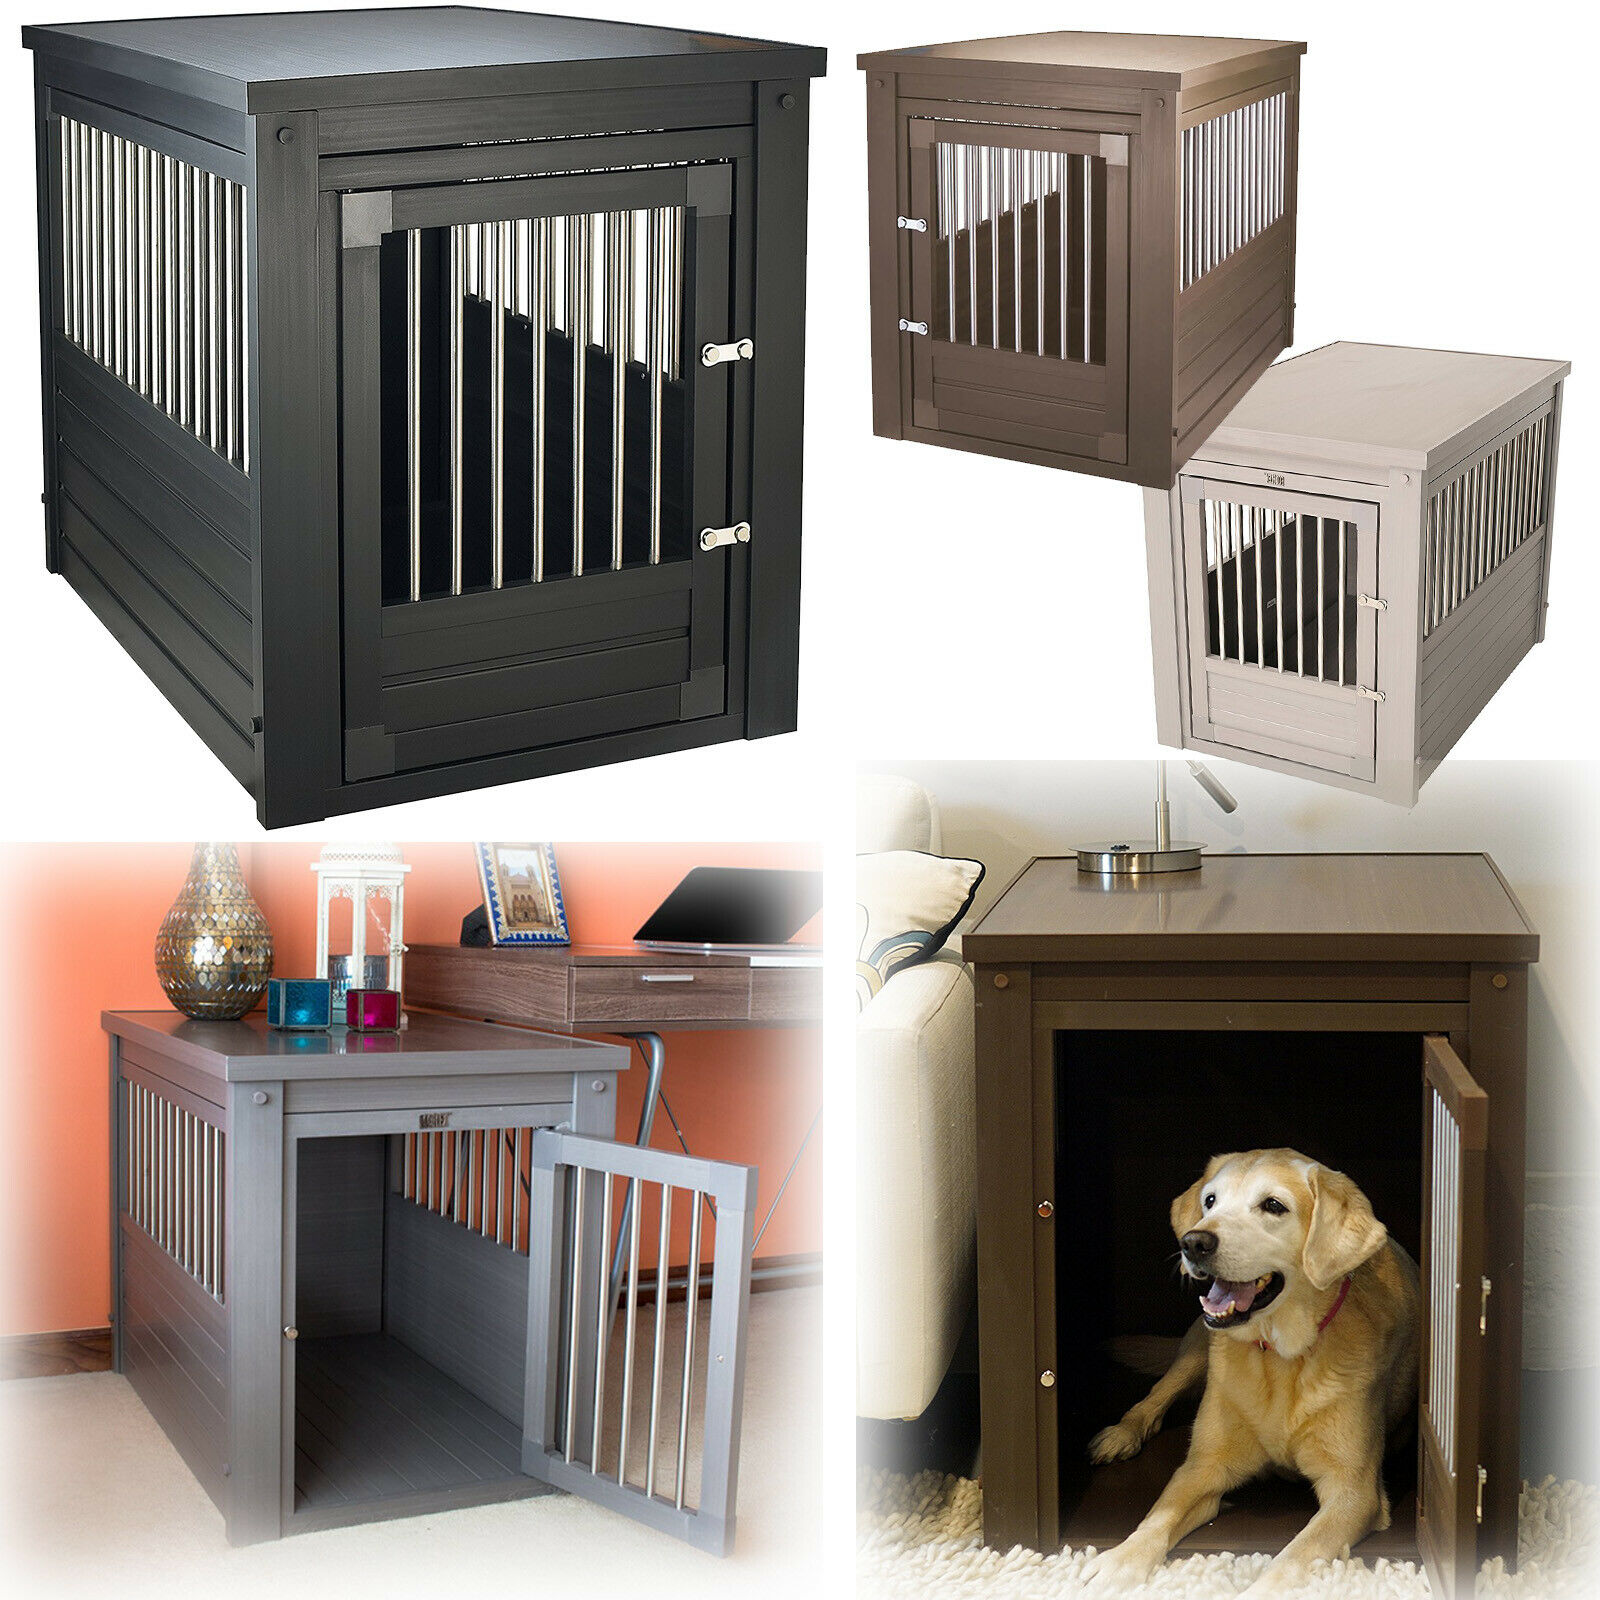 Dog Crate Metal Cage Stainless Steel Spindles Small Medium L